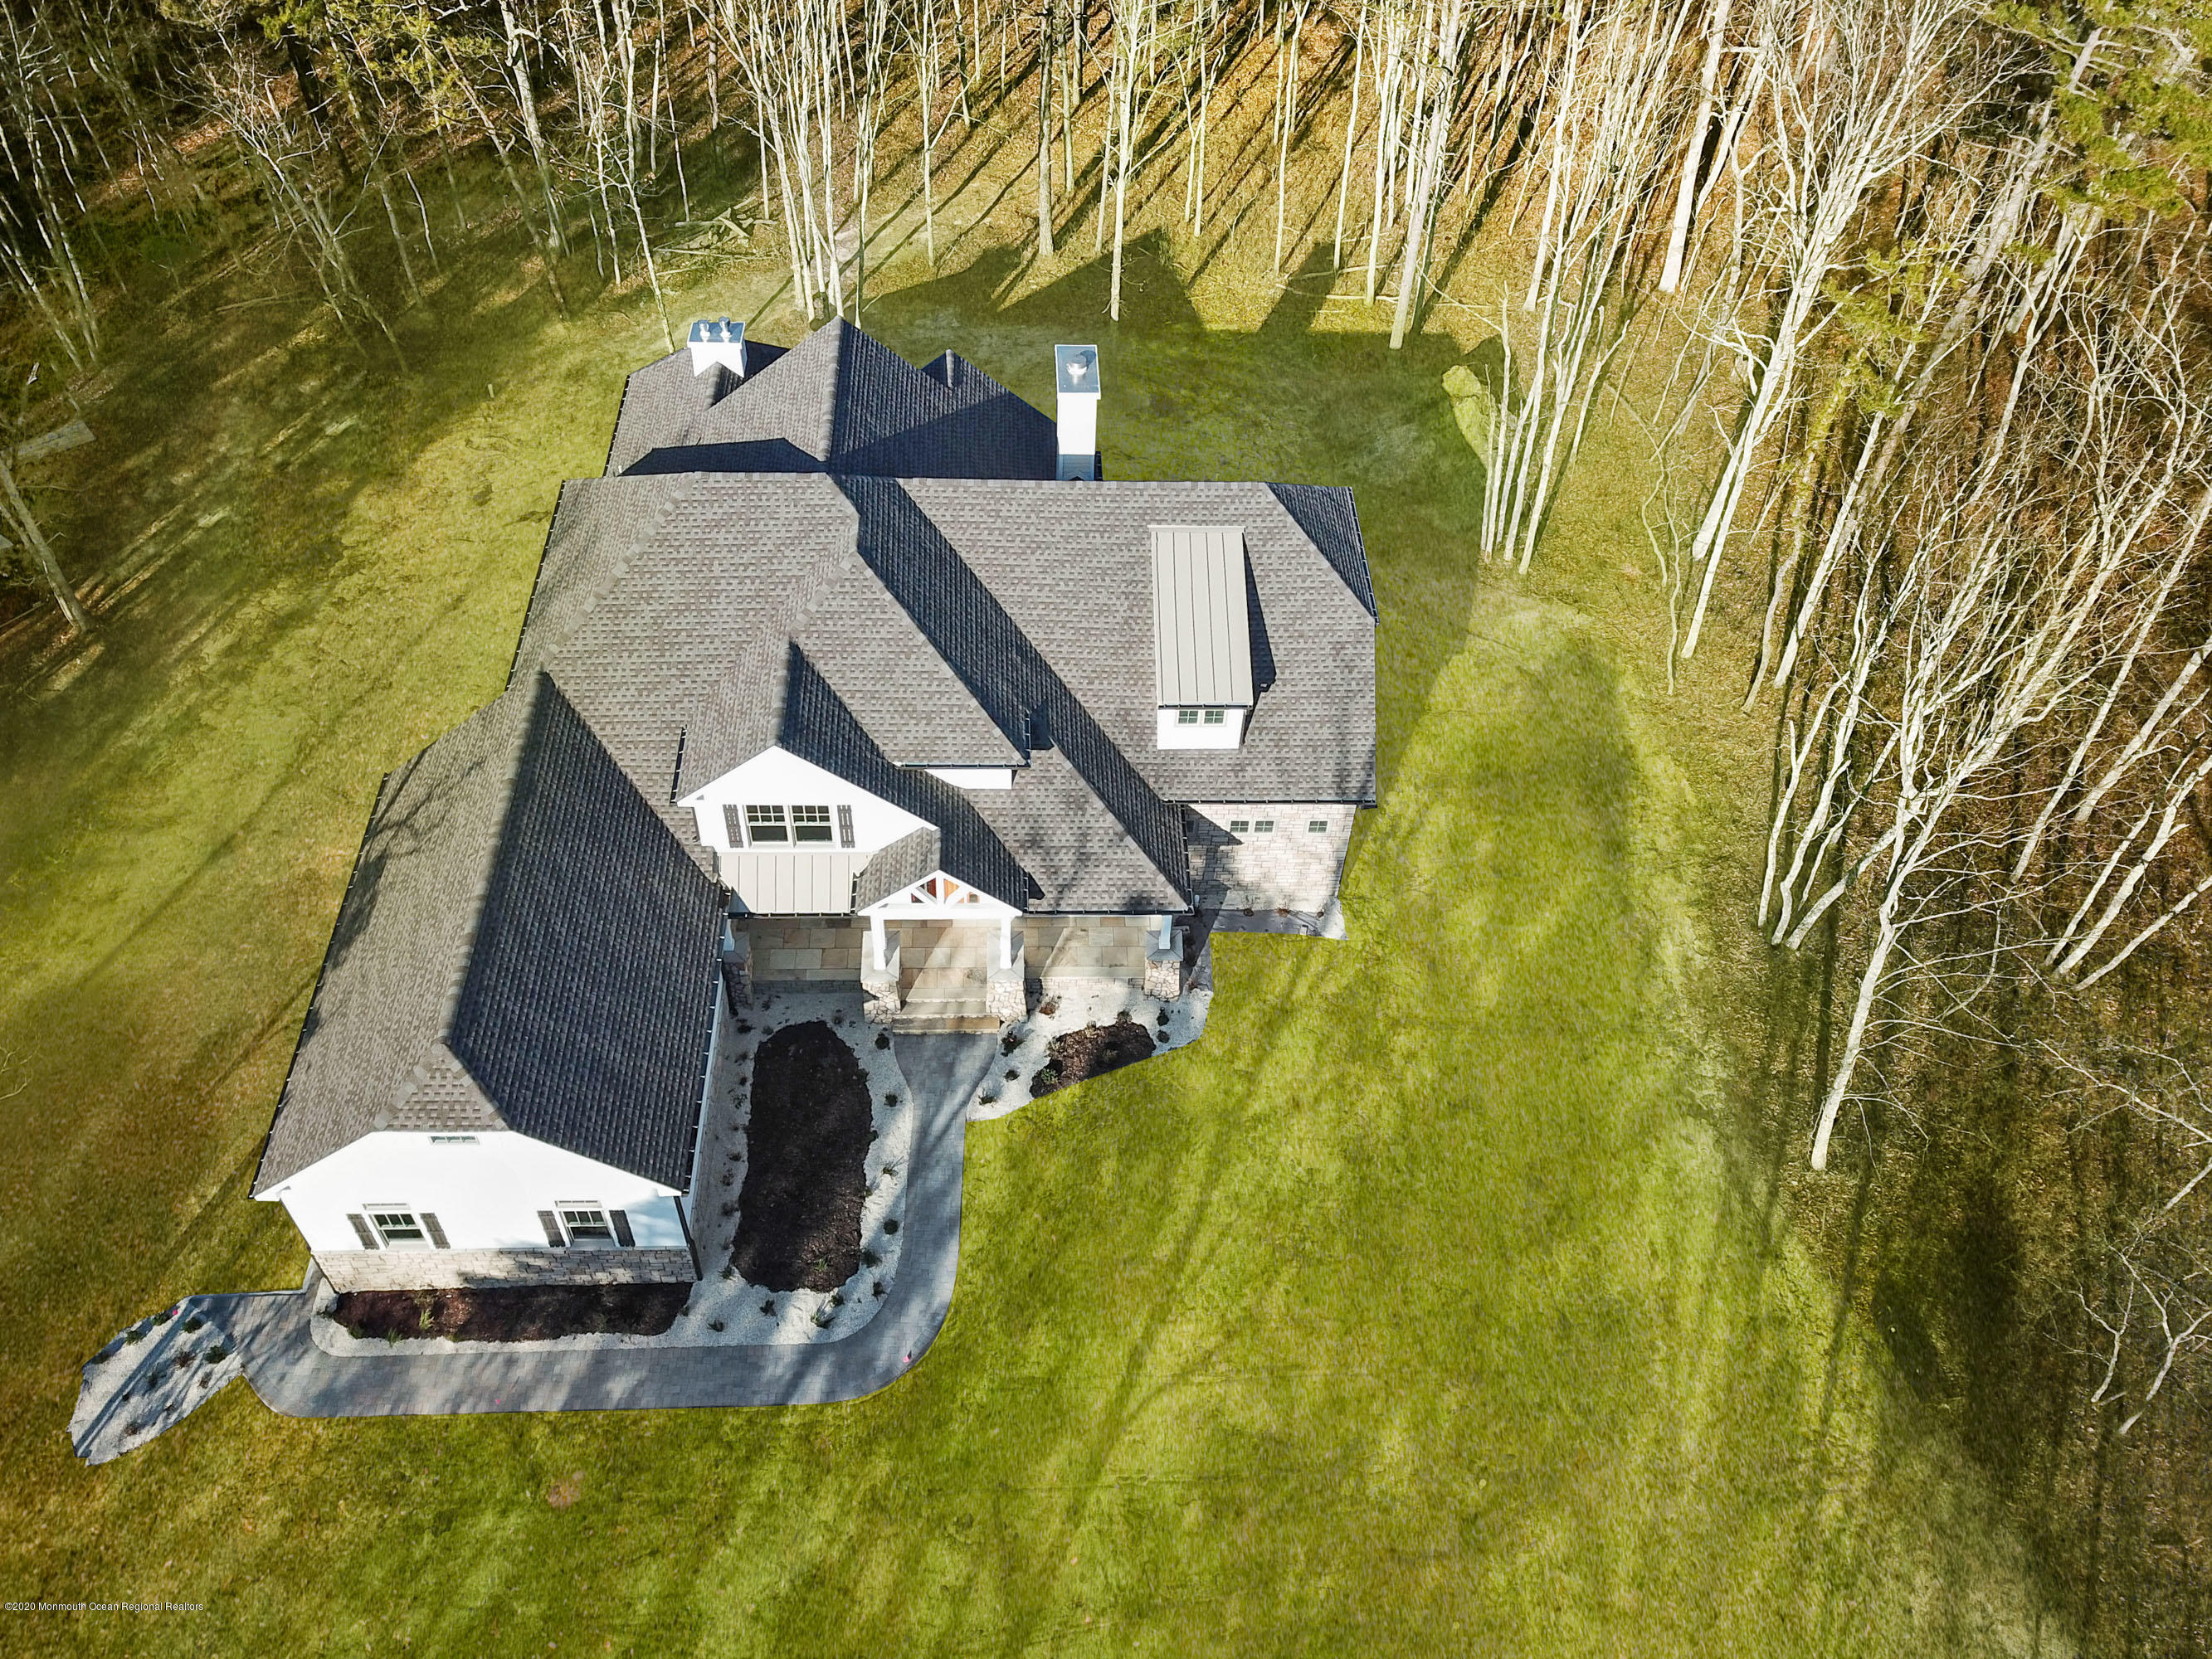 N. Pointe 9 Aerial with Grass